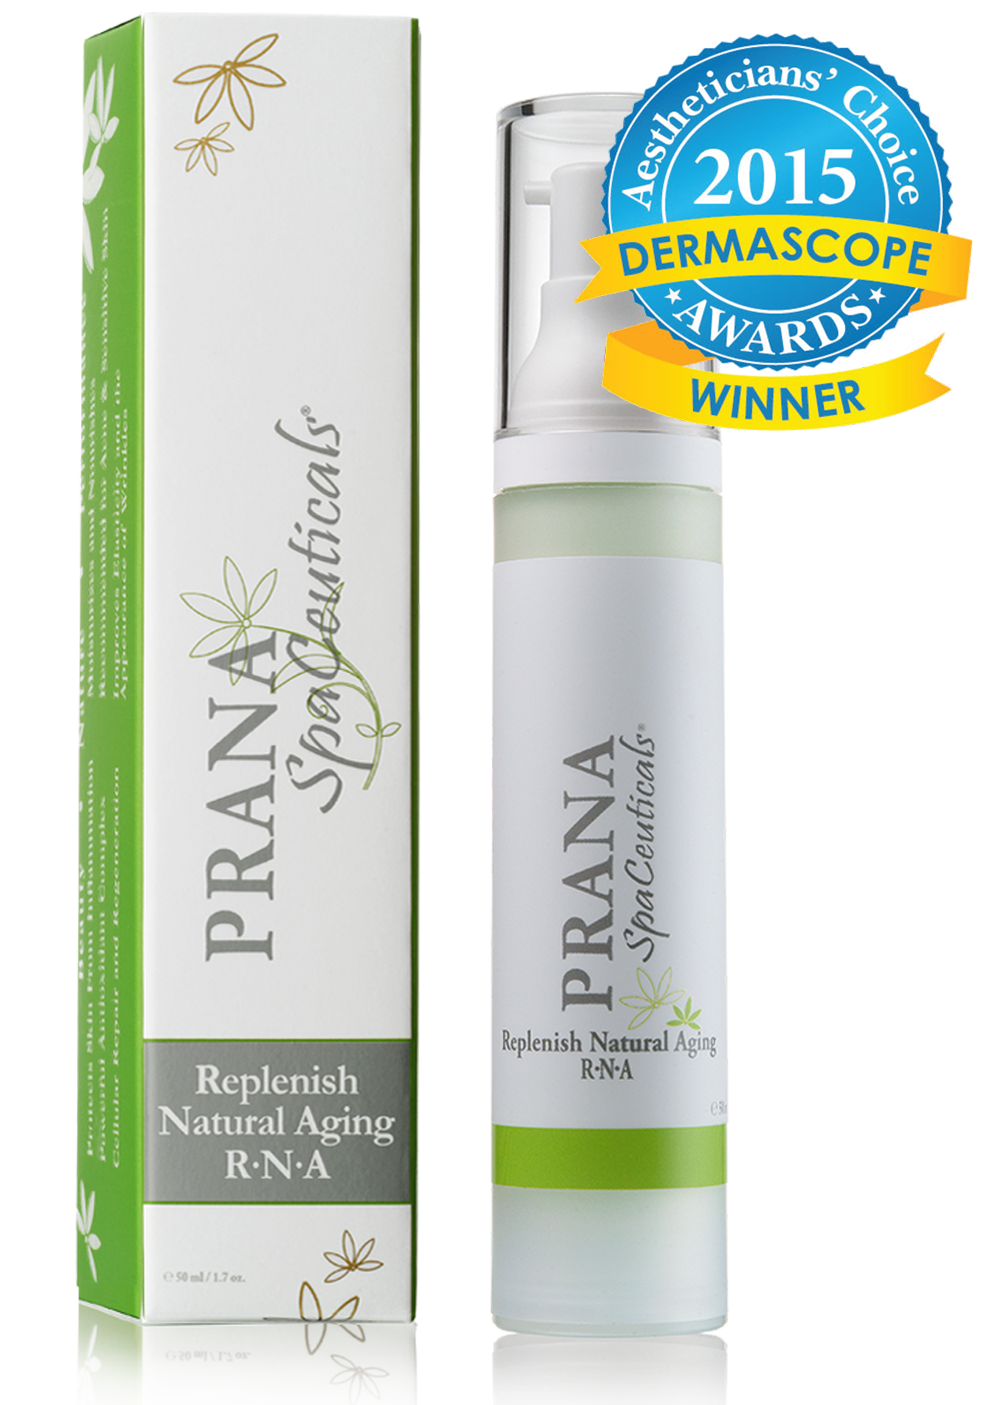 R.N.A Replenish Natural Aging